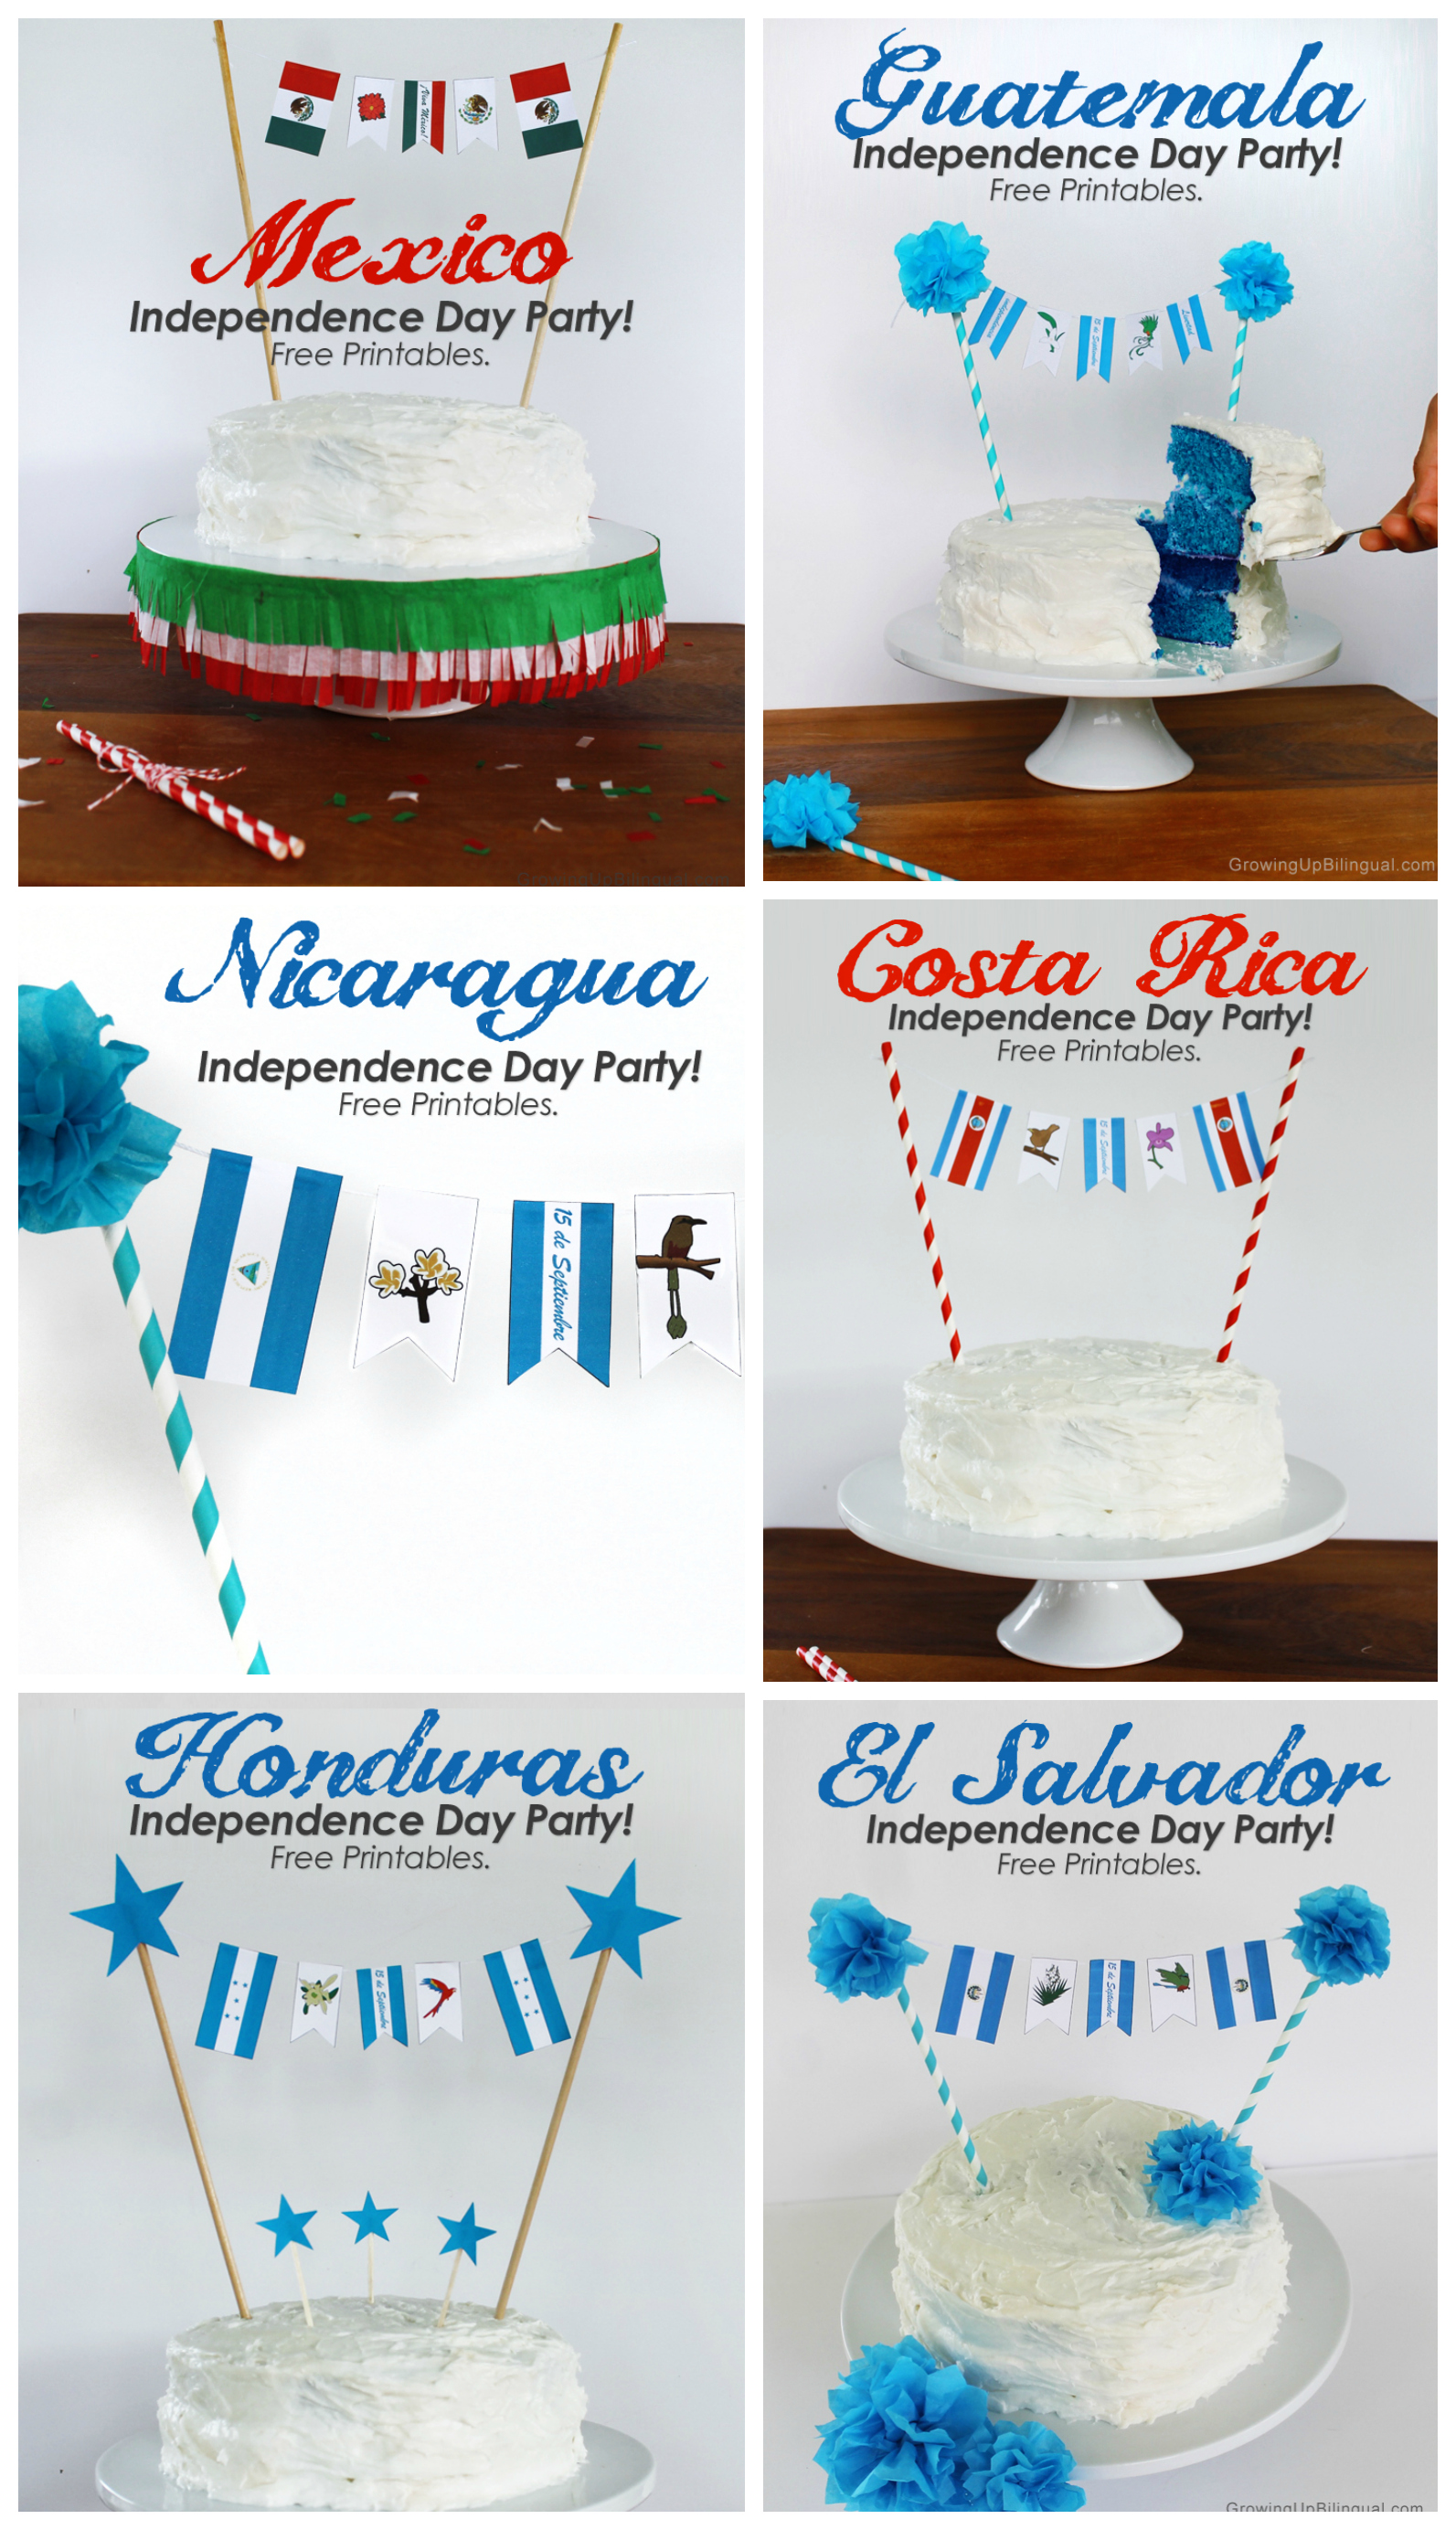 Celebrating Guatemala S Independence Free Party Printables And Cake Banner For All Central